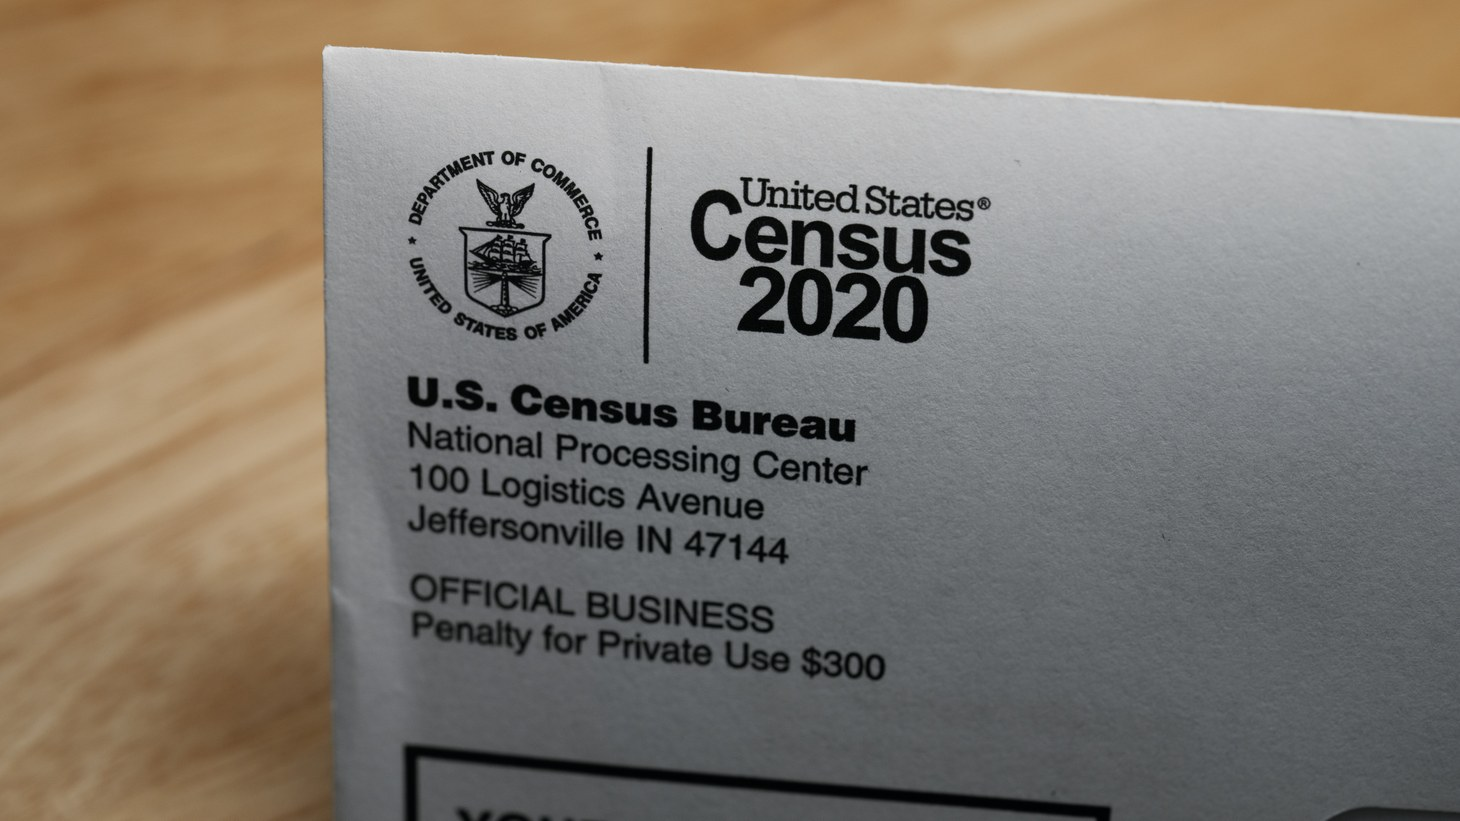 The Supreme Court is allowing President Trump to end the 2020 Census count early. Trump says the deadline needed to be moved up to give Census officials enough time to process the data before the end of the year.